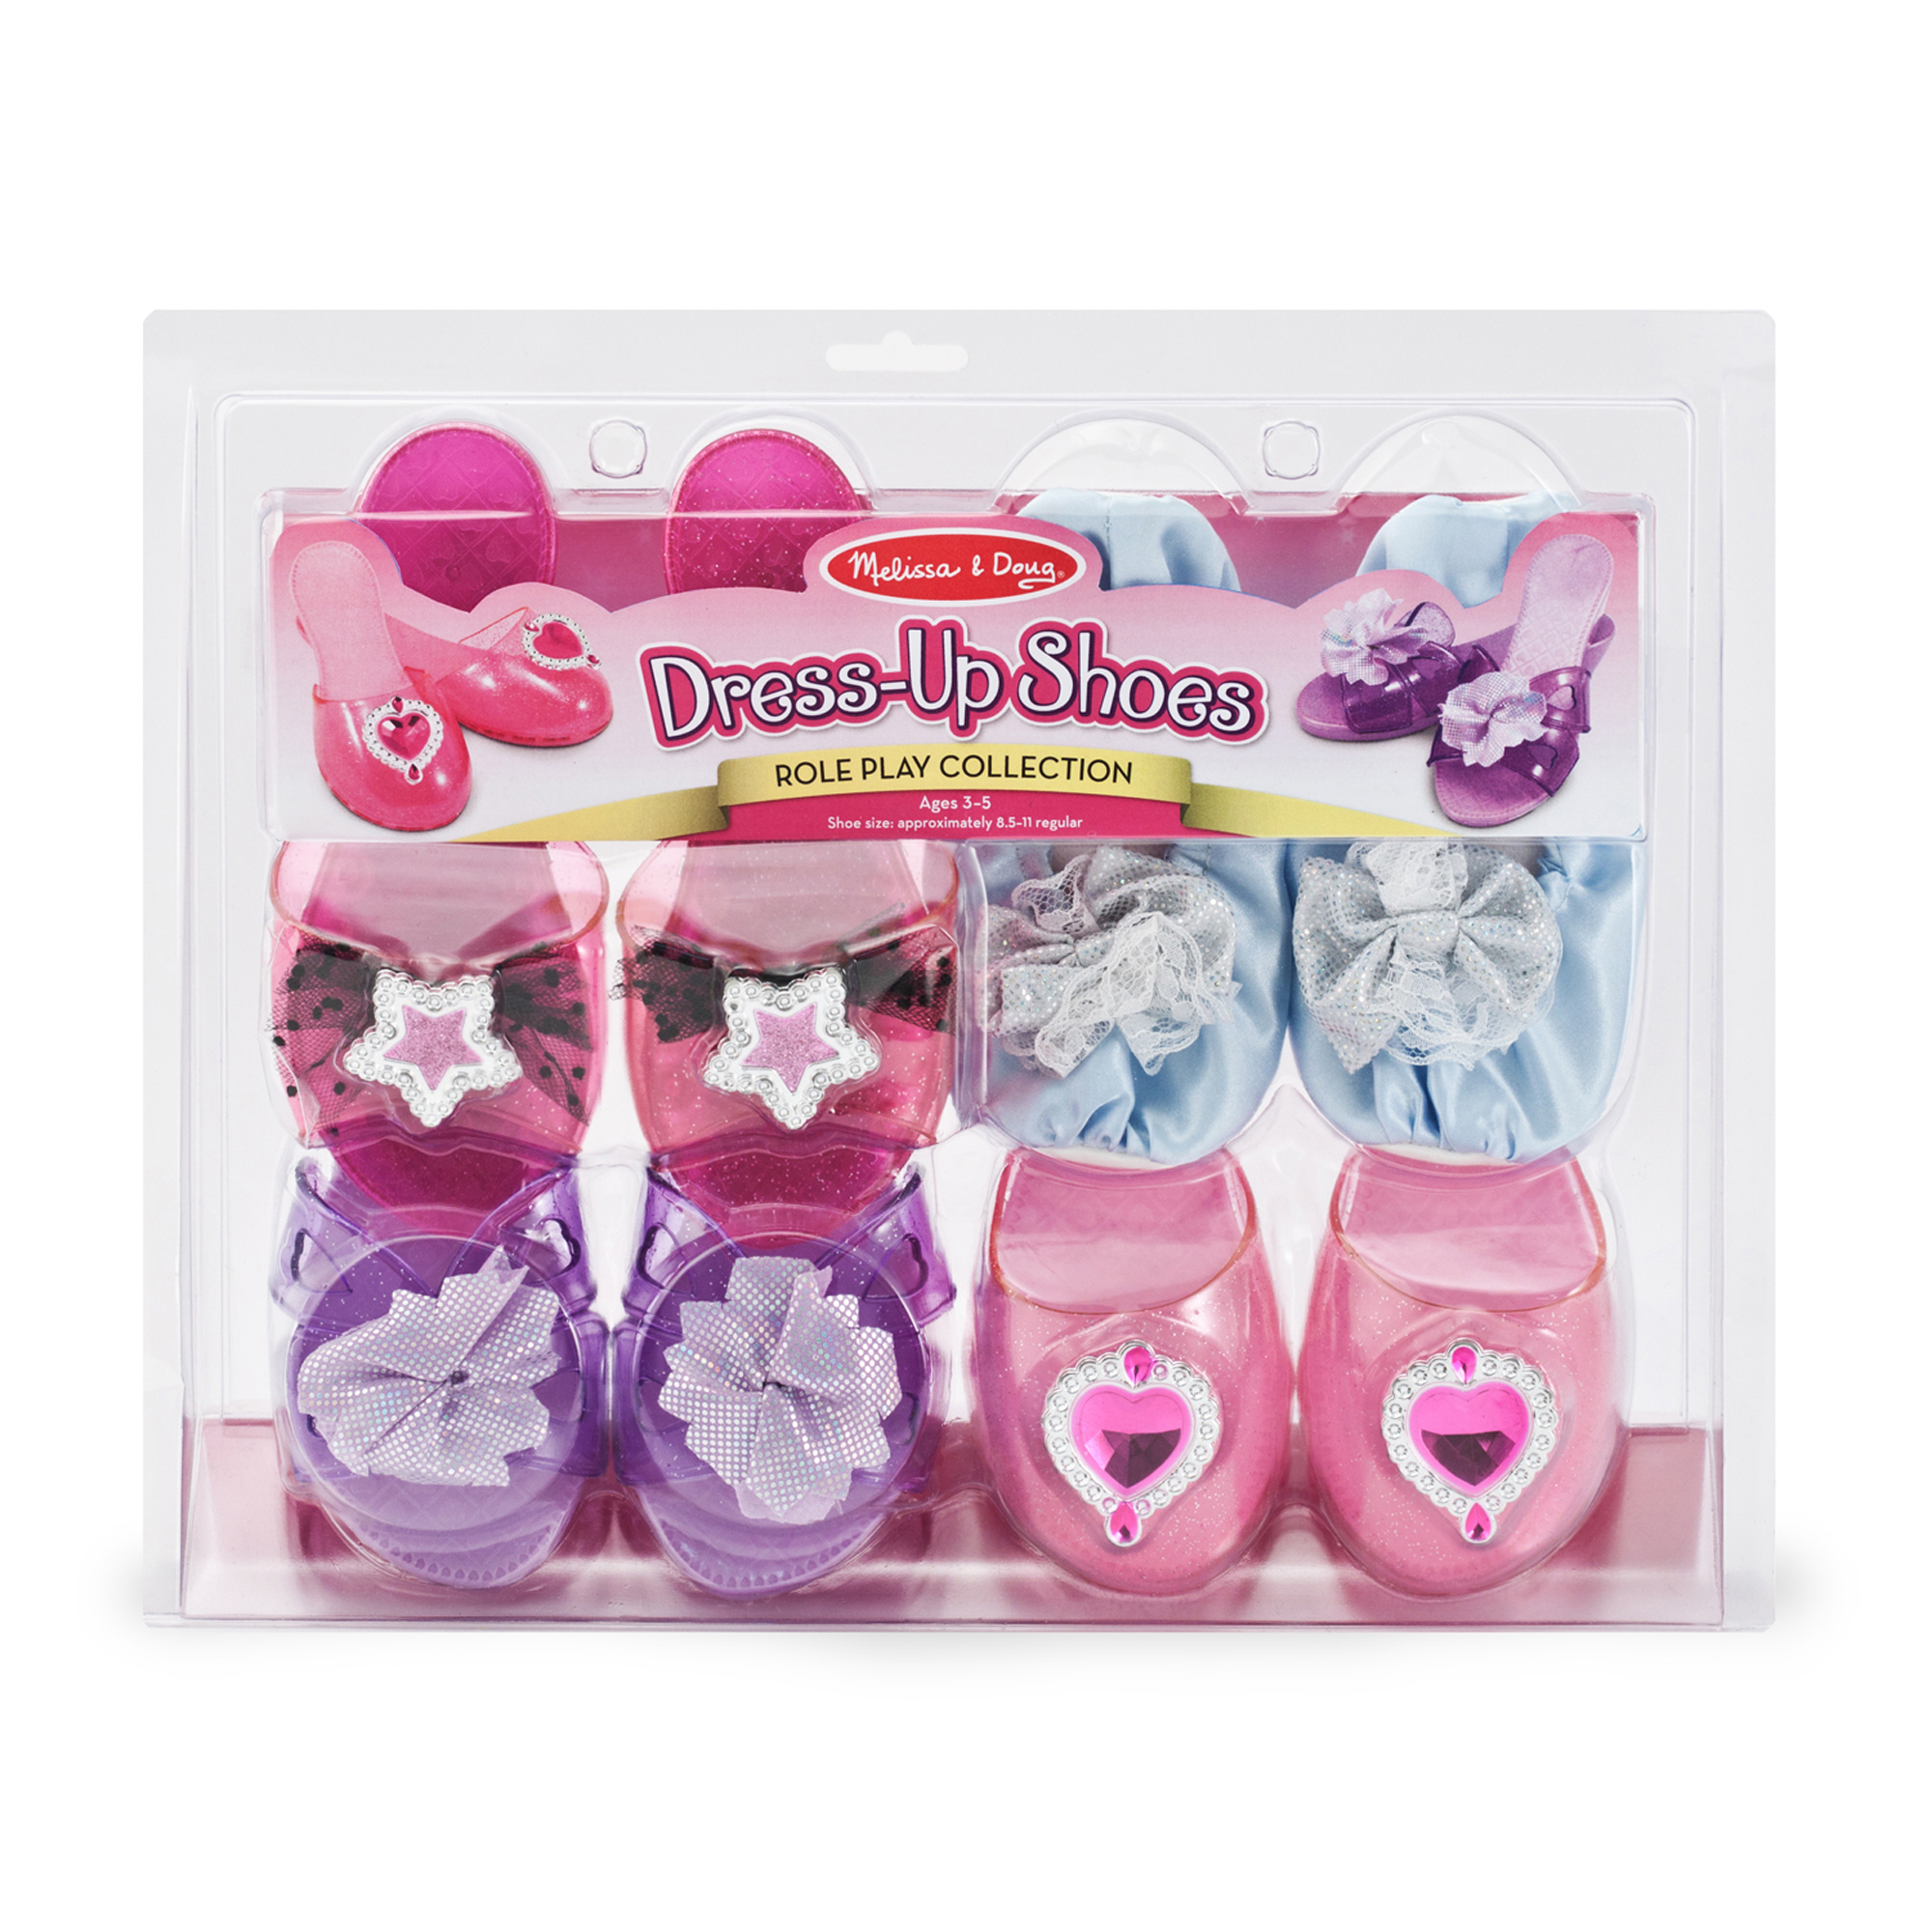 Role Play Collection, Step In Style! Dress-Up Shoes, Pretend Play, Set (4 Pairs), 11